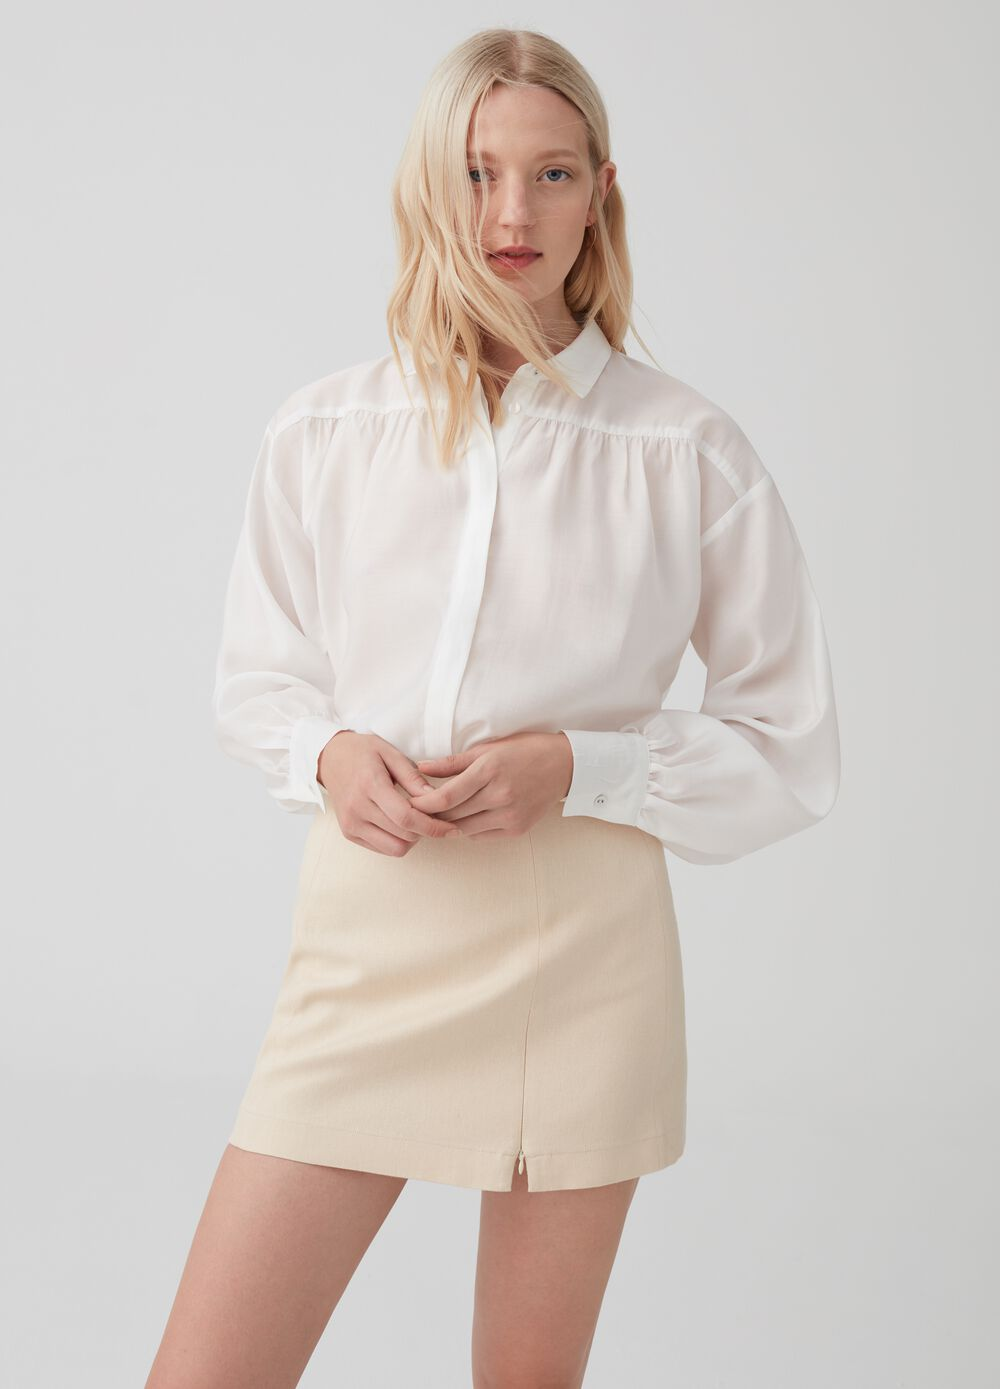 Soft-fit shirt with drop shoulder